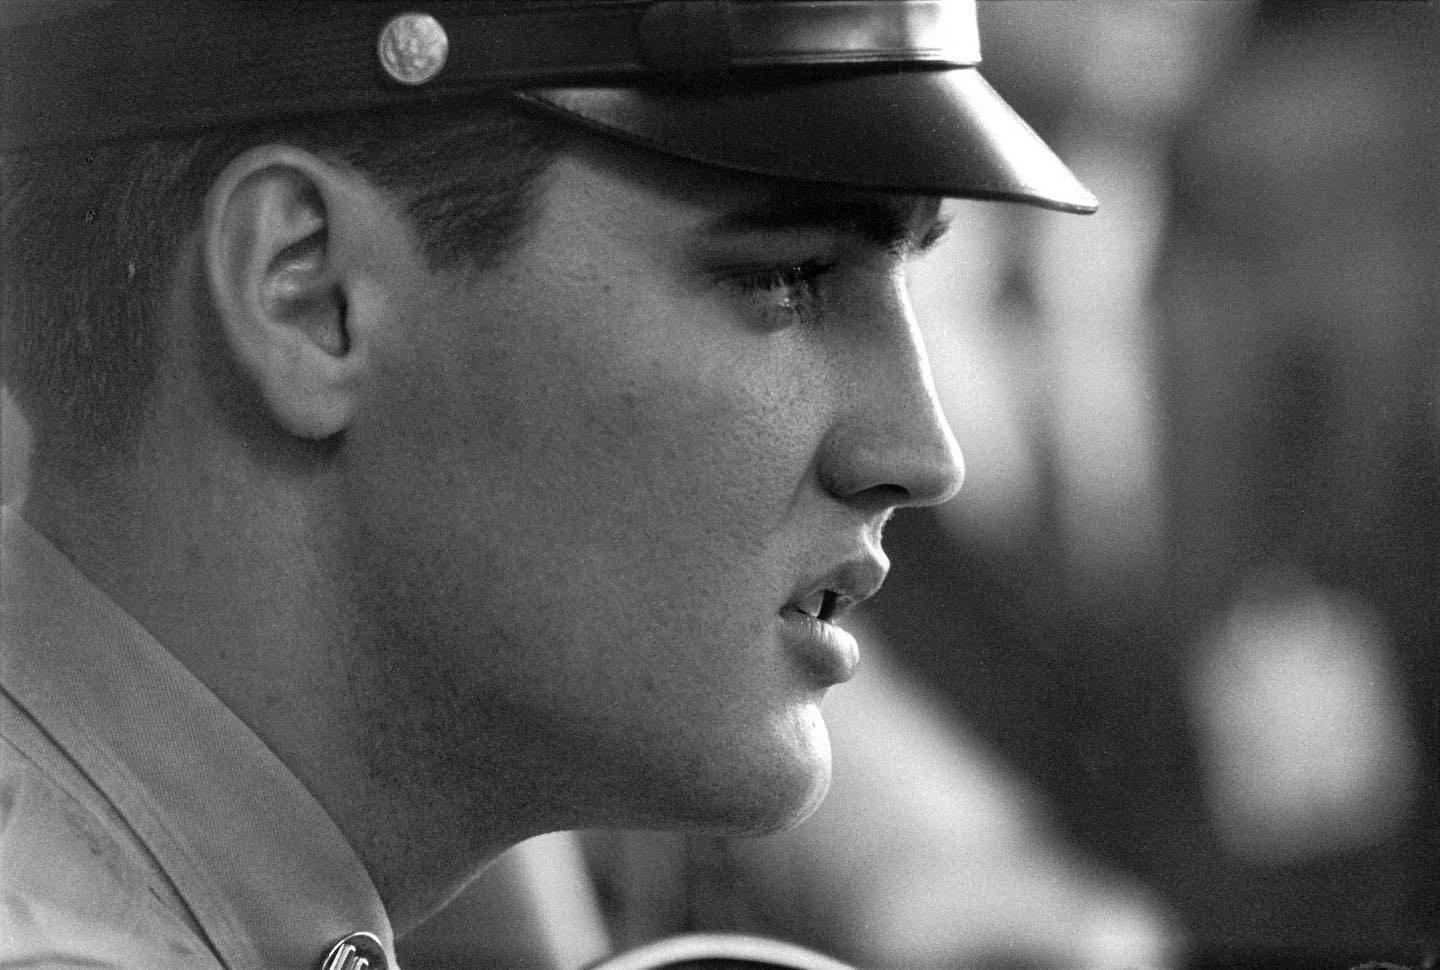 Elvis Presley left for his tour in the military #OnThisDay in 1958, when he shipped out to Germany alongside his fellow recruits. Crowds of people and press arrived to see him off from the Brooklyn Army Terminal in New York.  Image description: In image 1, Elvis is seen in profile at a press conference, in uniform. In image 2, he is seen again in uniform at his press conference. He holds a microphone to his chest and looks over his shoulder while a crowd of reporters is seen across the desk where he sits. In image 3, uniformed Elvis is ushered through a thick crowd of people. In image 4, Elvis is seen aboard the USS General George M. Randall. His fellow recruits are to his left and the last of his fans seeing him off reach out to him from his right.  © Alfred Wertheimer/MUUS Collection